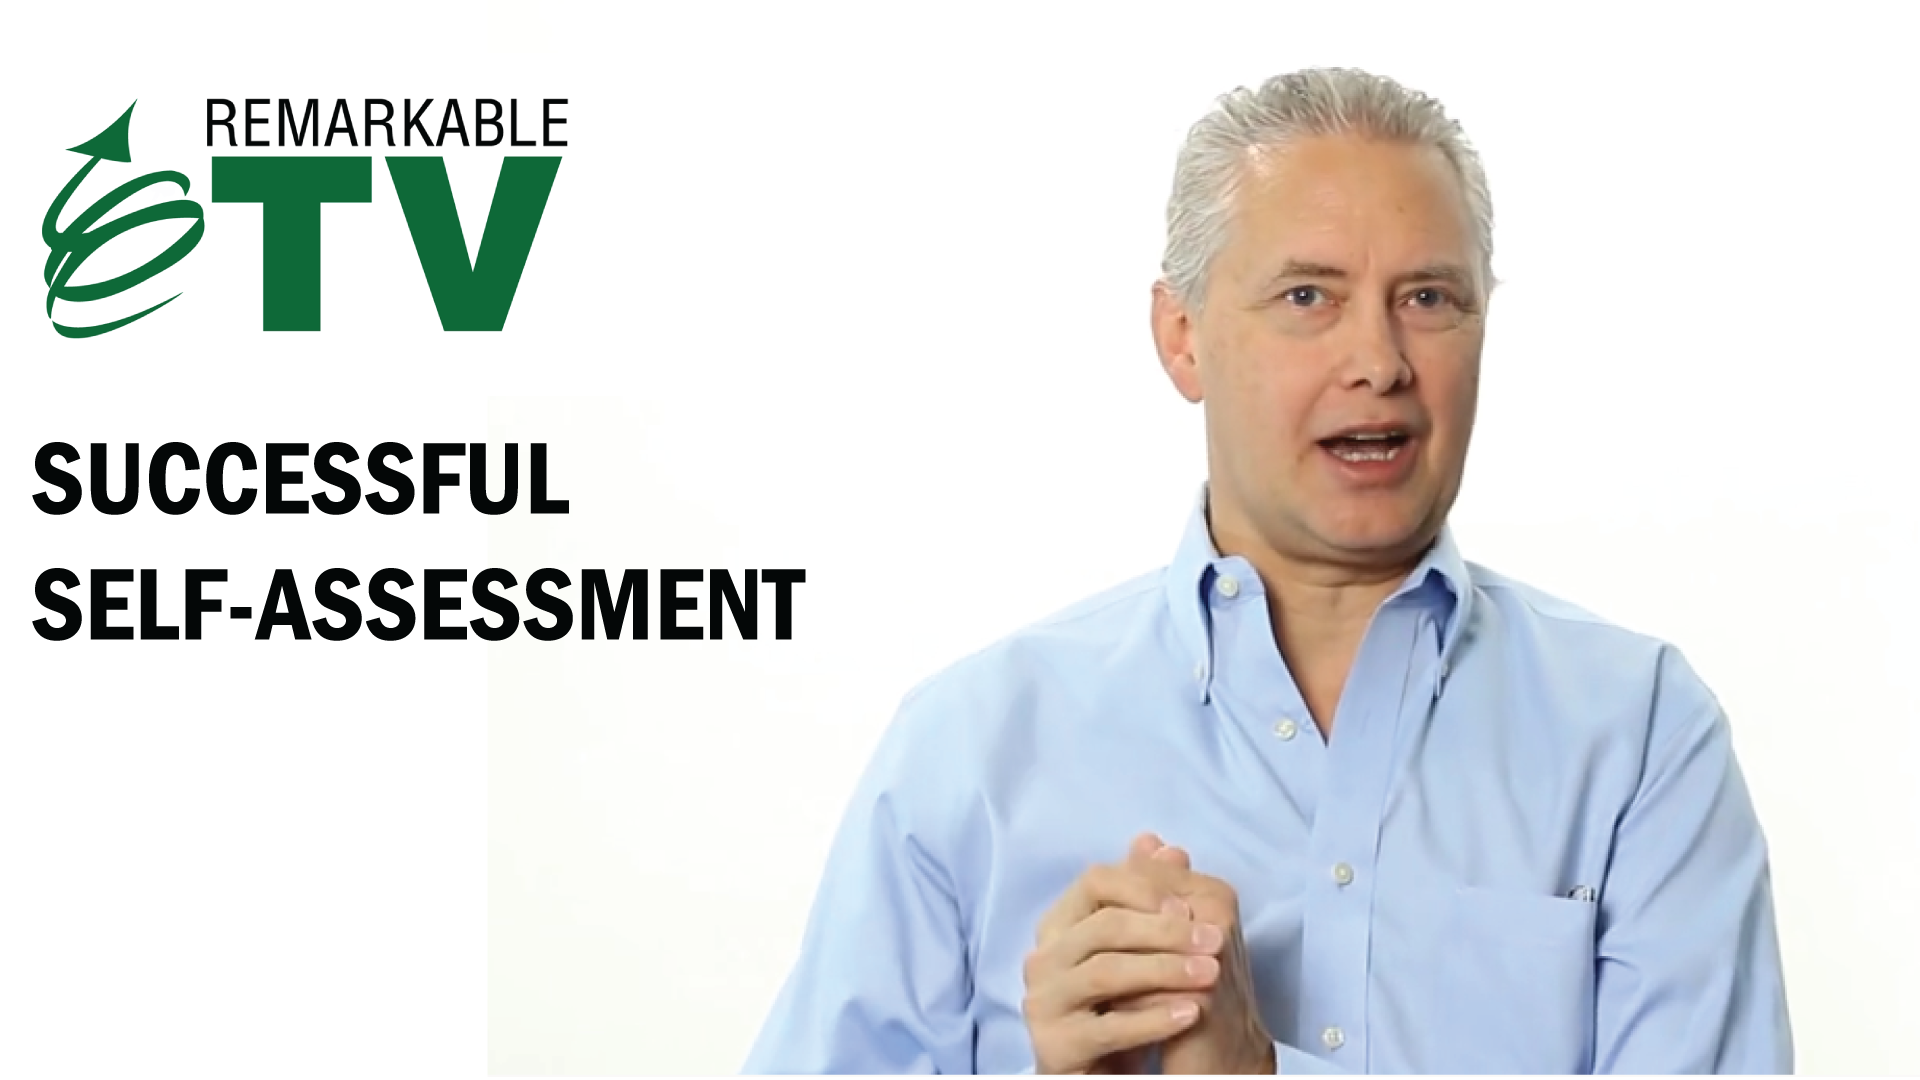 Successful Self-Assessment Remarkable TV episode with Kevin Eikenberry